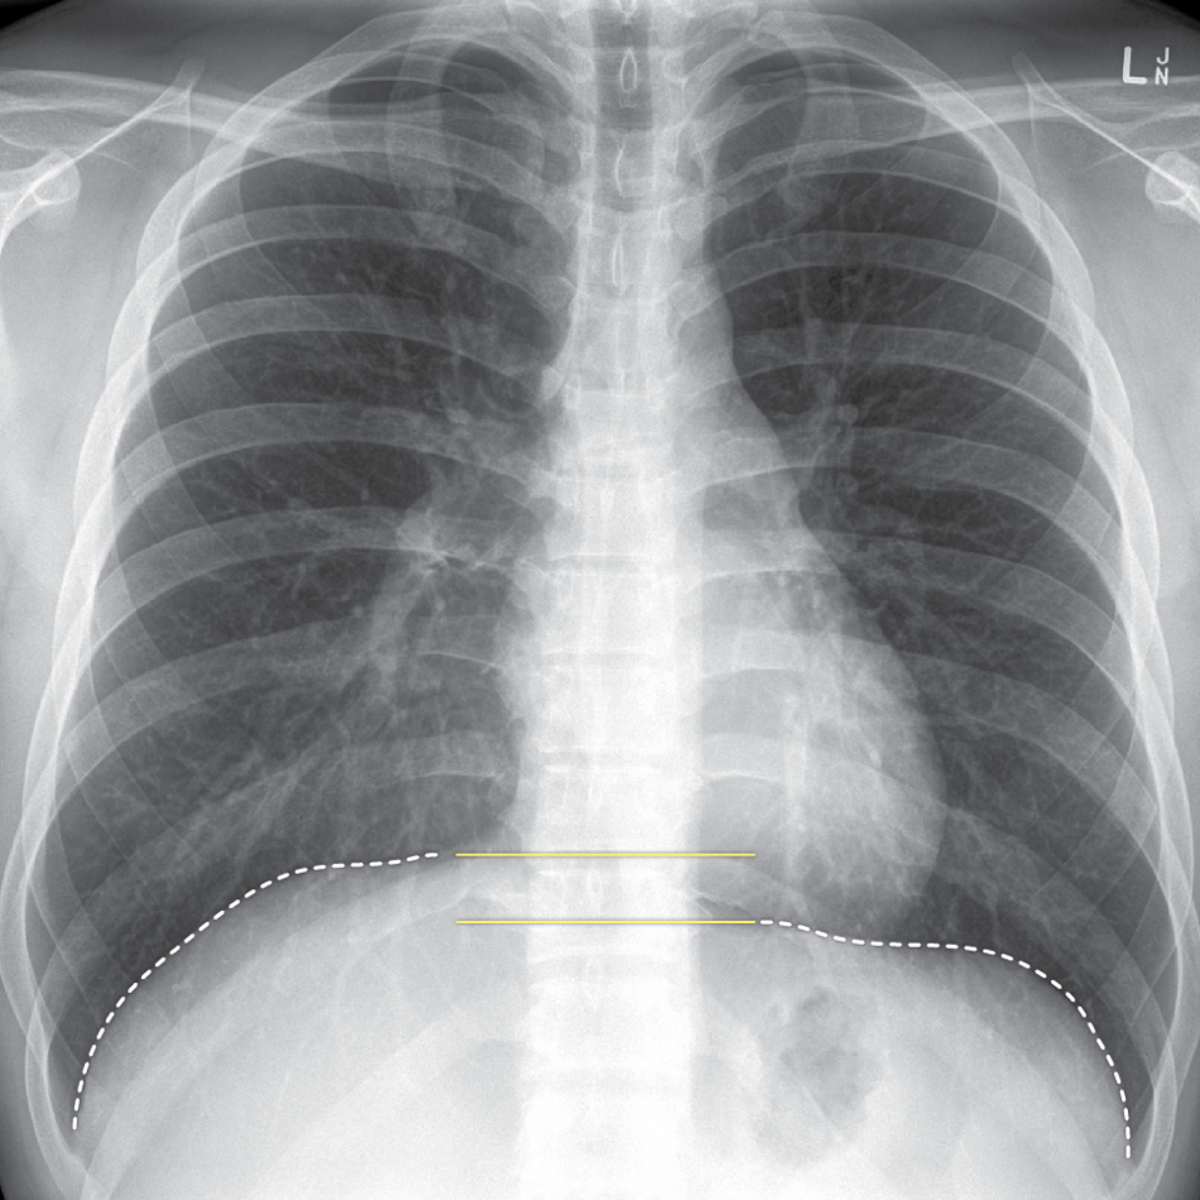 Within the Lungs and Bronchi branch again, forming secondary and tertiary bronchi, then smaller bronchioles and finally terminal bronchioles ending at the alveoli.